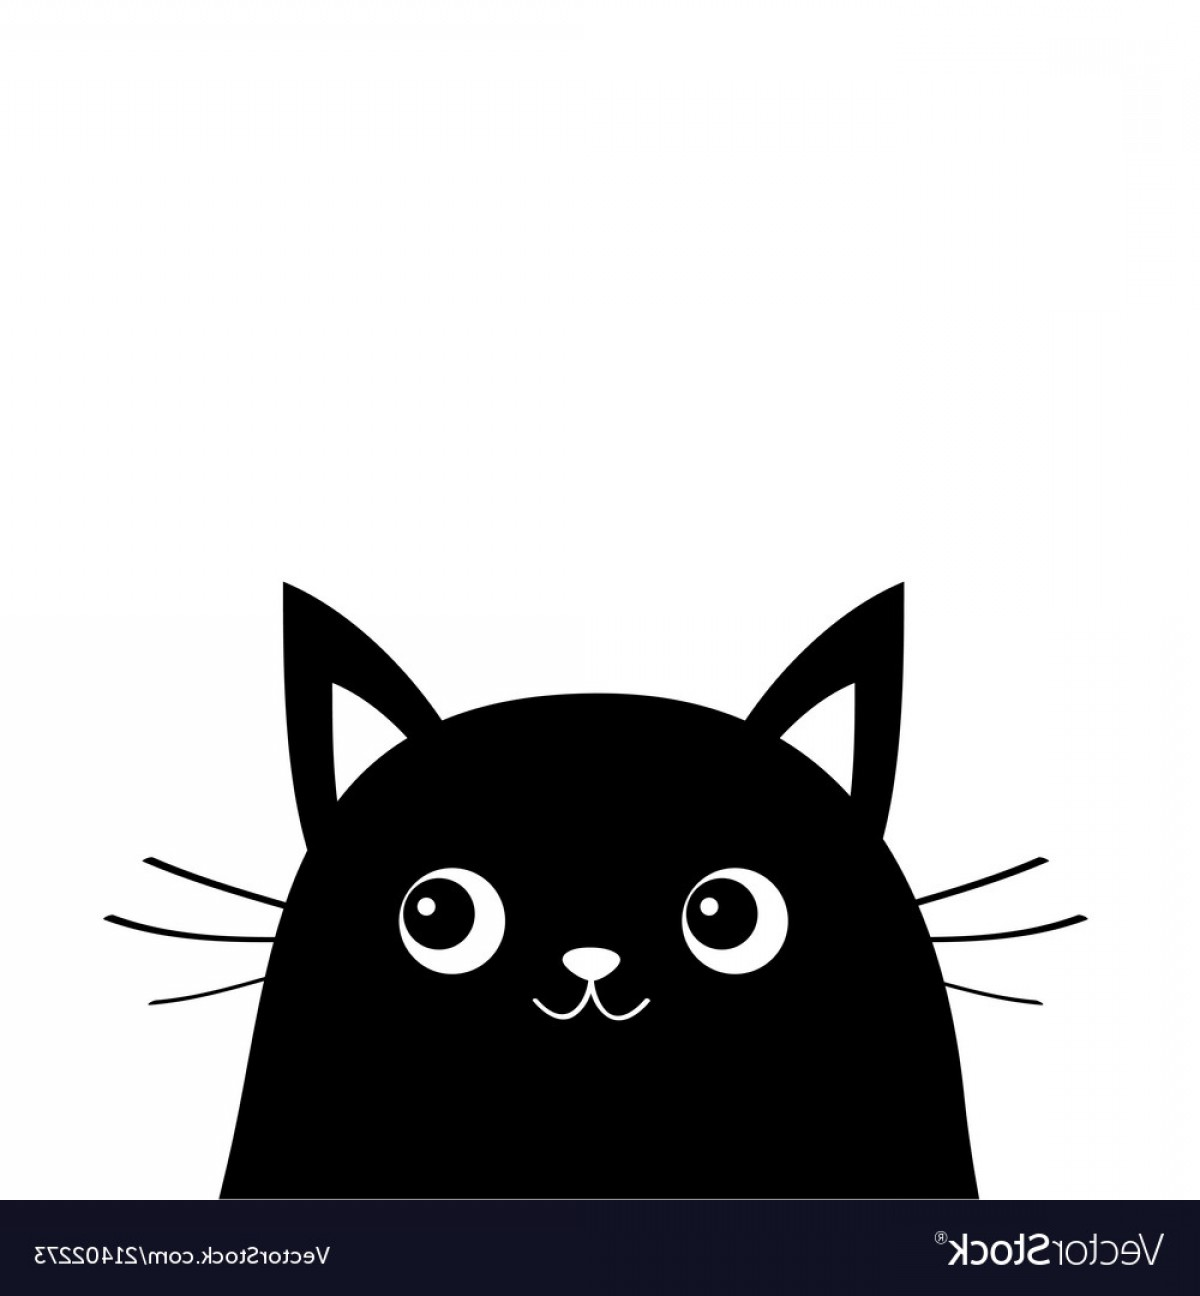 Kawaii kitten outline clipart black and white clip freeuse download White Cat Face Silhouette Kawaii Animal Cute Vector | SOIDERGI clip freeuse download